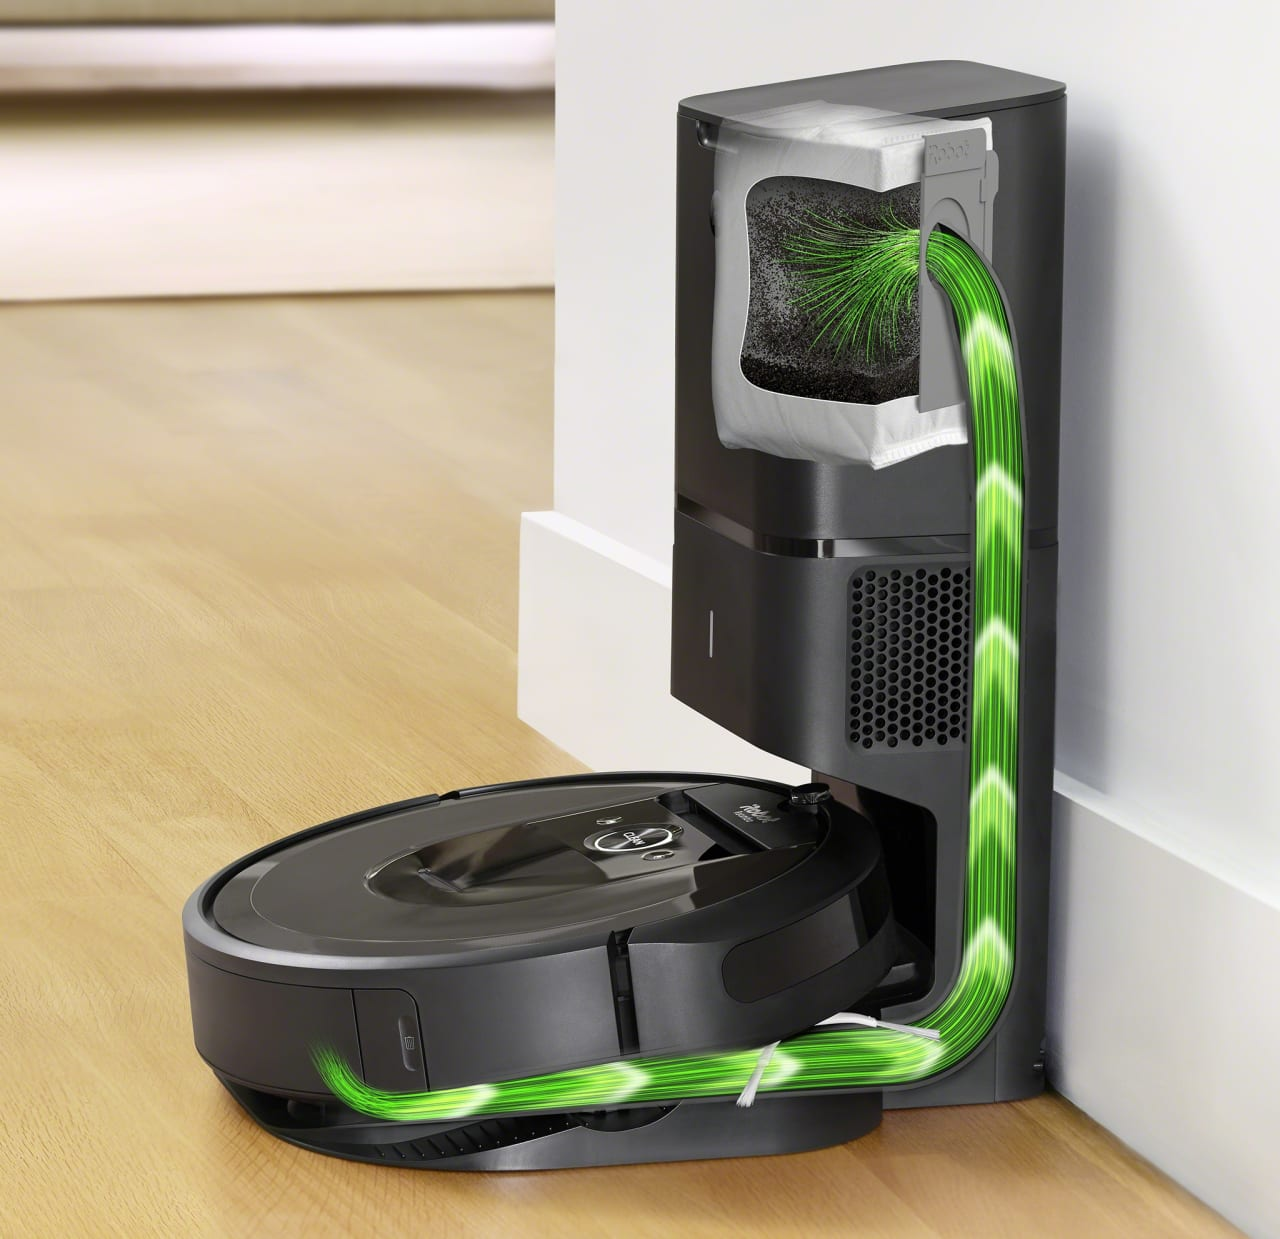 Black iRobot Roomba i7+ Vacuum Cleaner Robot with Dirt Disposal Station.4